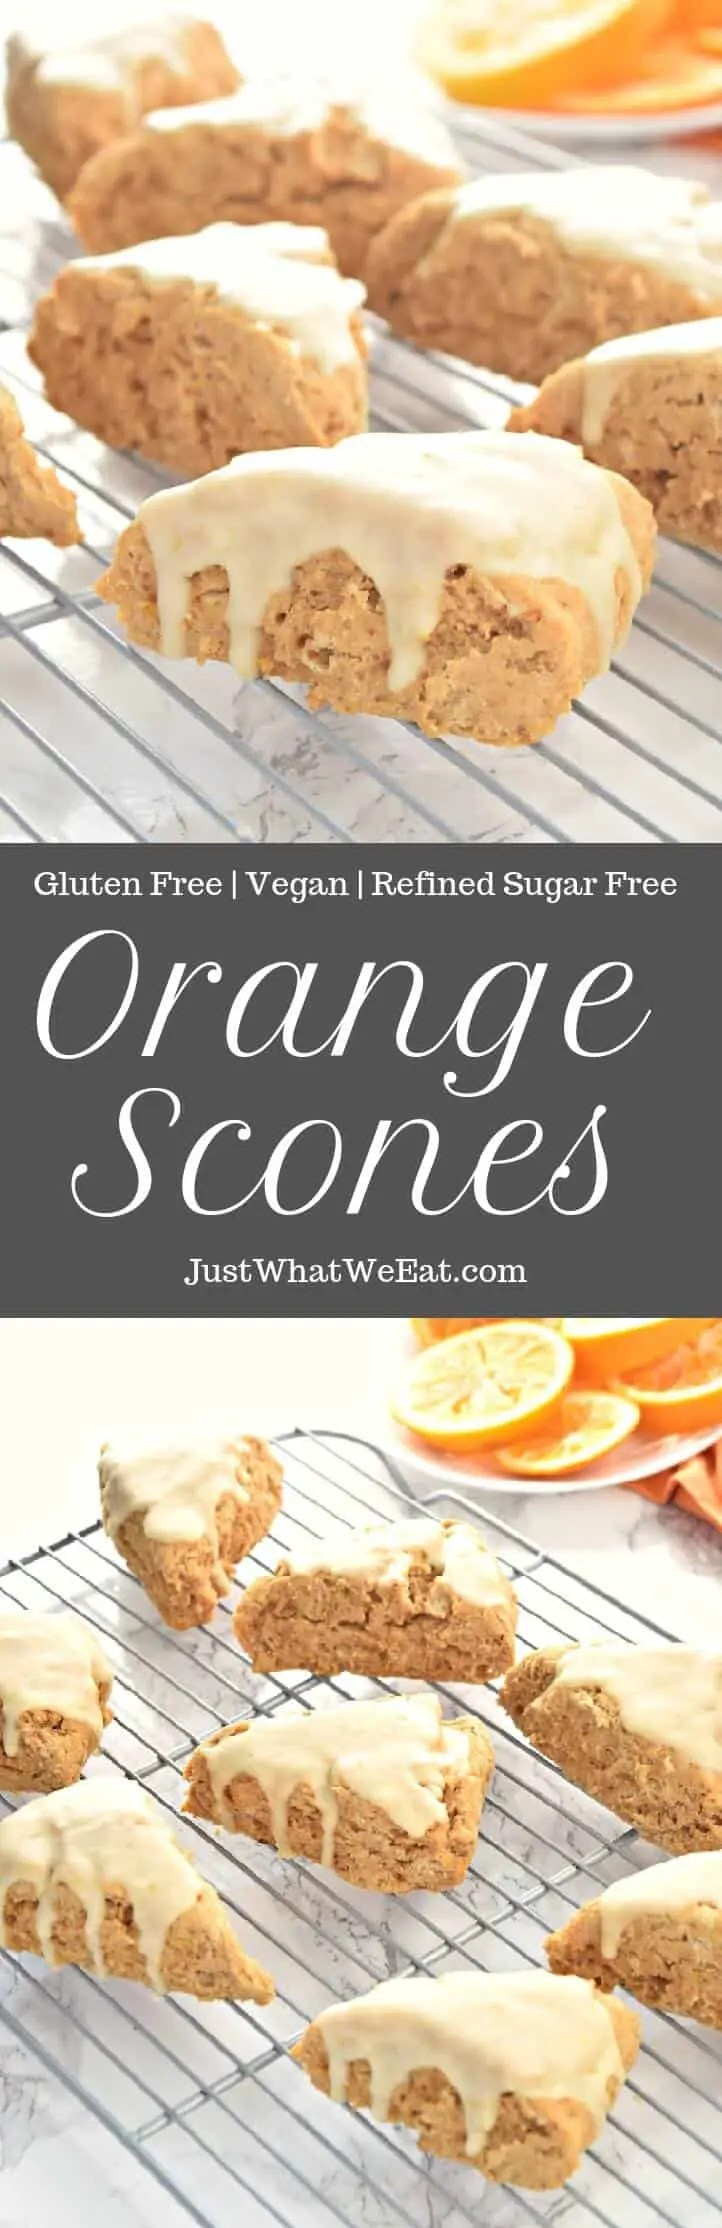 Orange Scones - Gluten Free, Vegan, and Refined Sugar Free